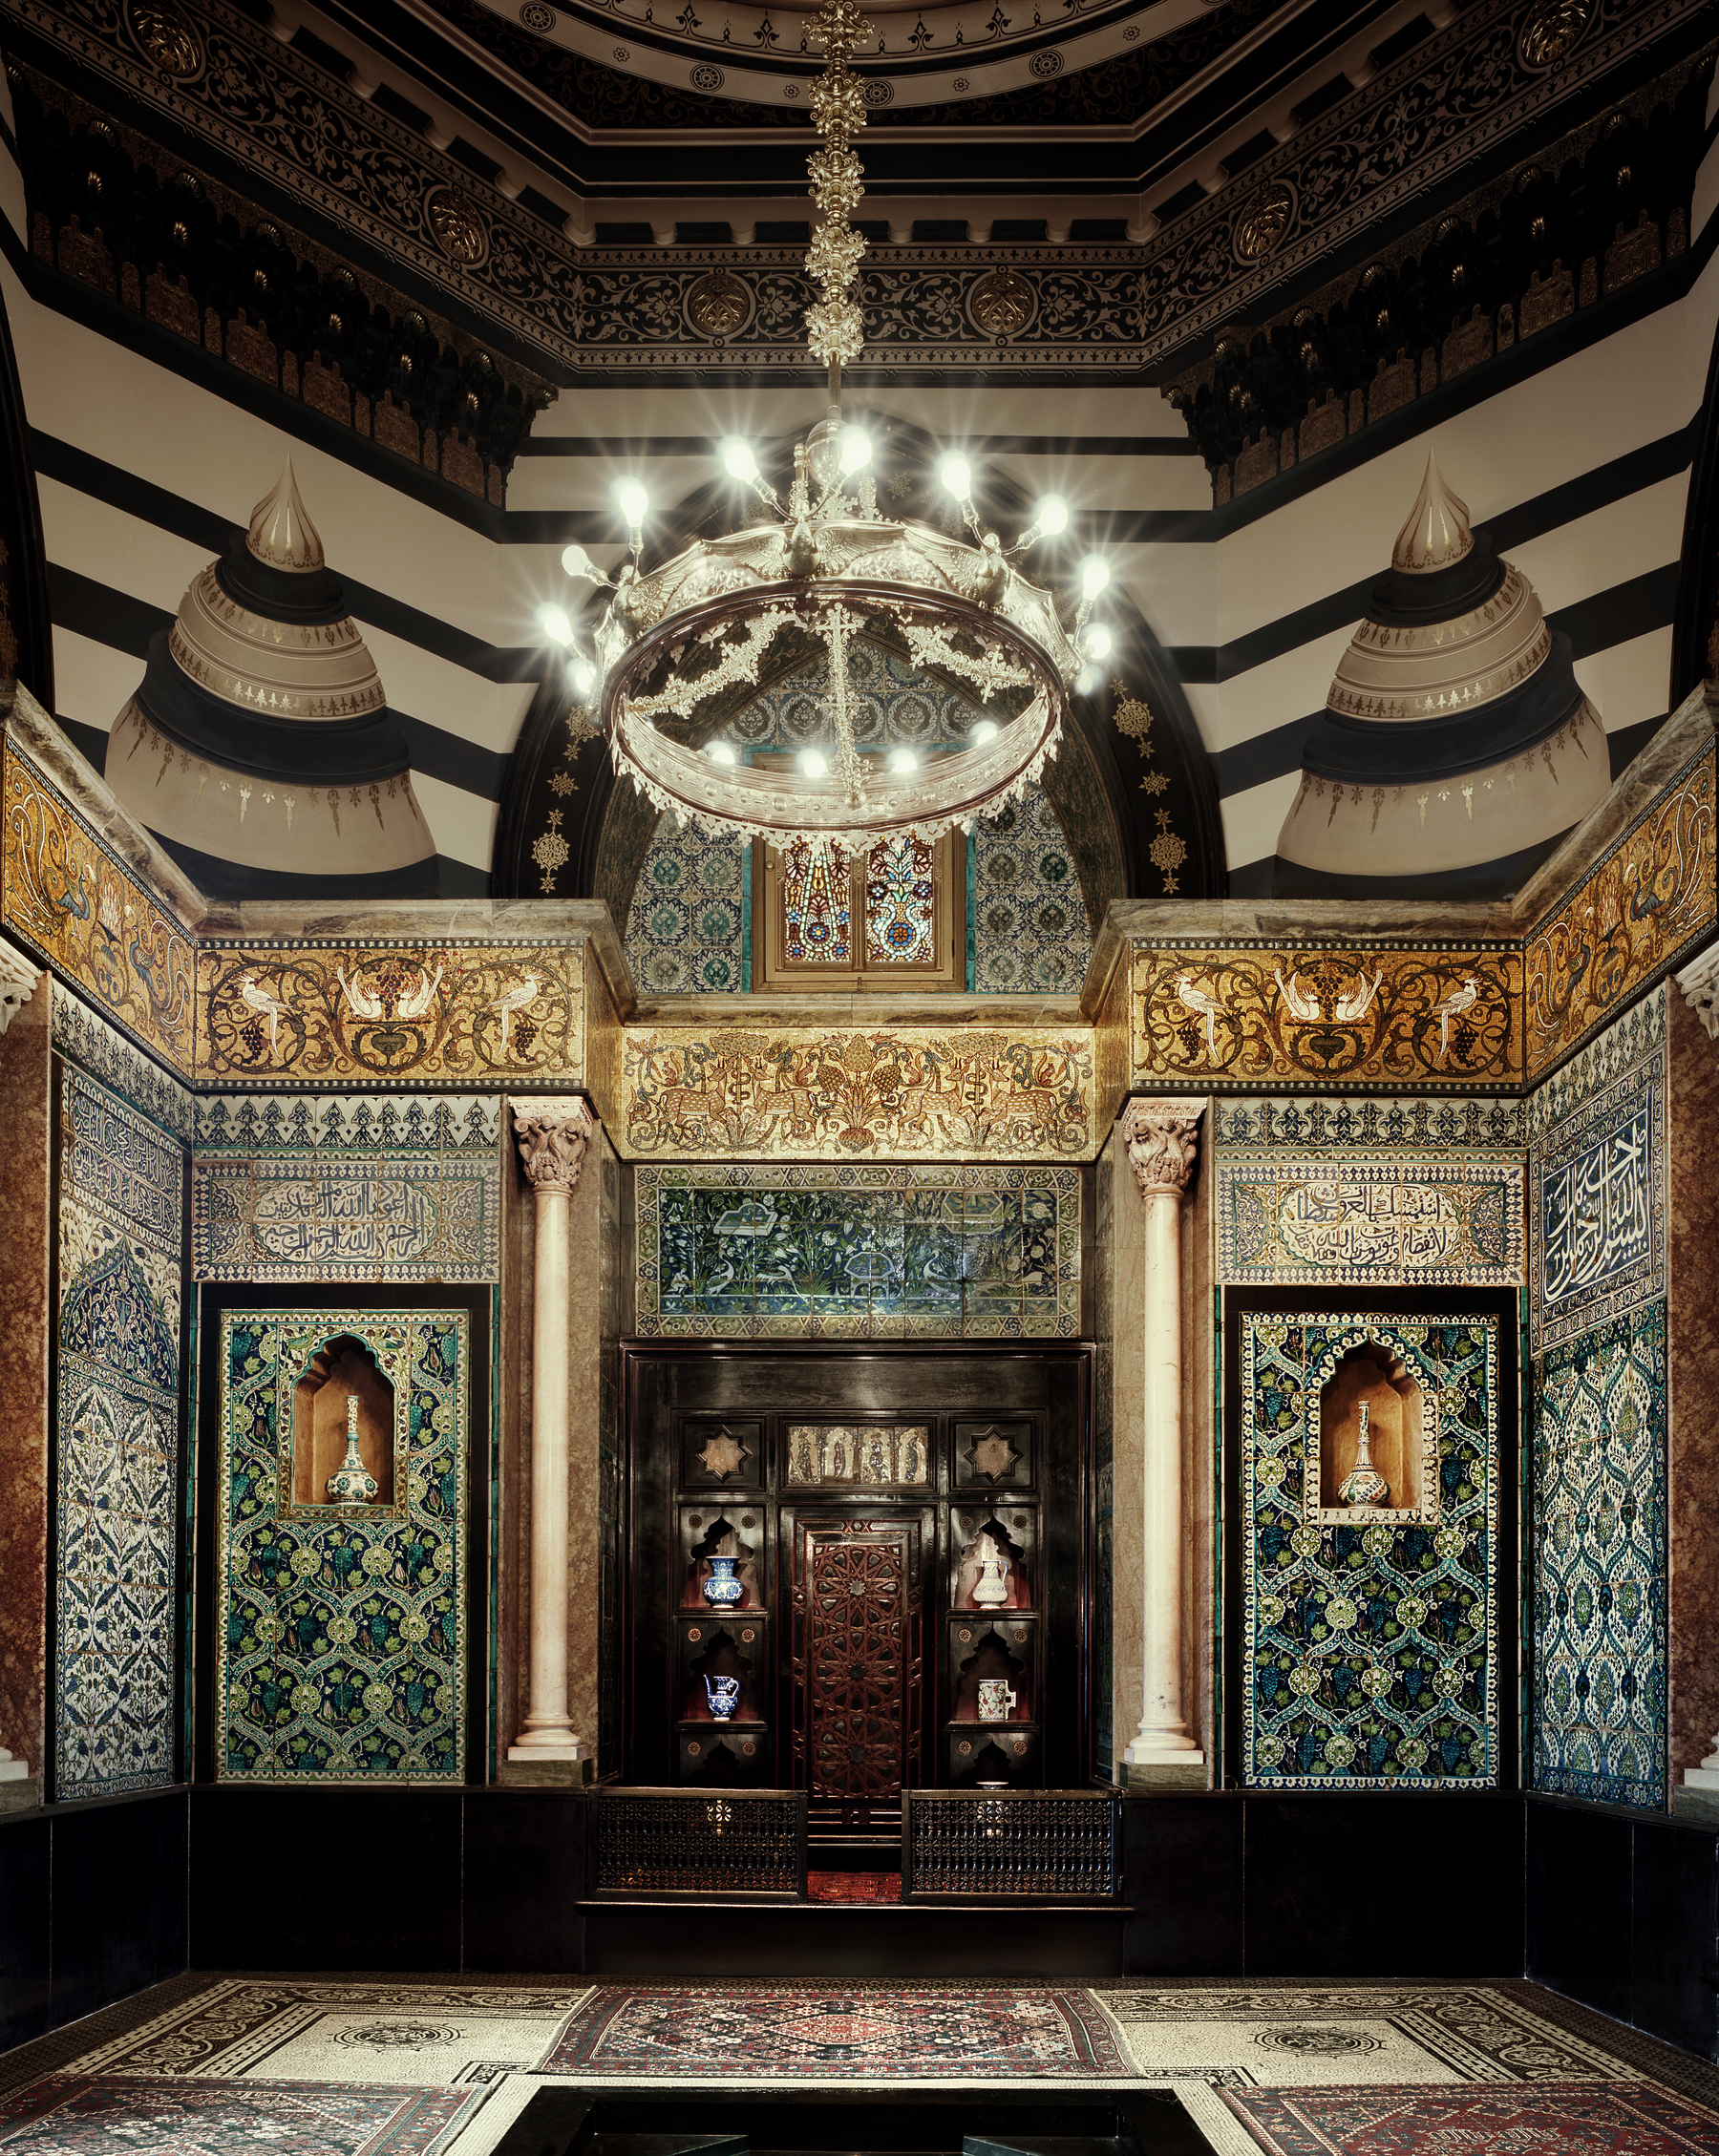 Leighton House Museum, London The Arab Hall. Courtesy of Leighton House Museum and Justin Barton.